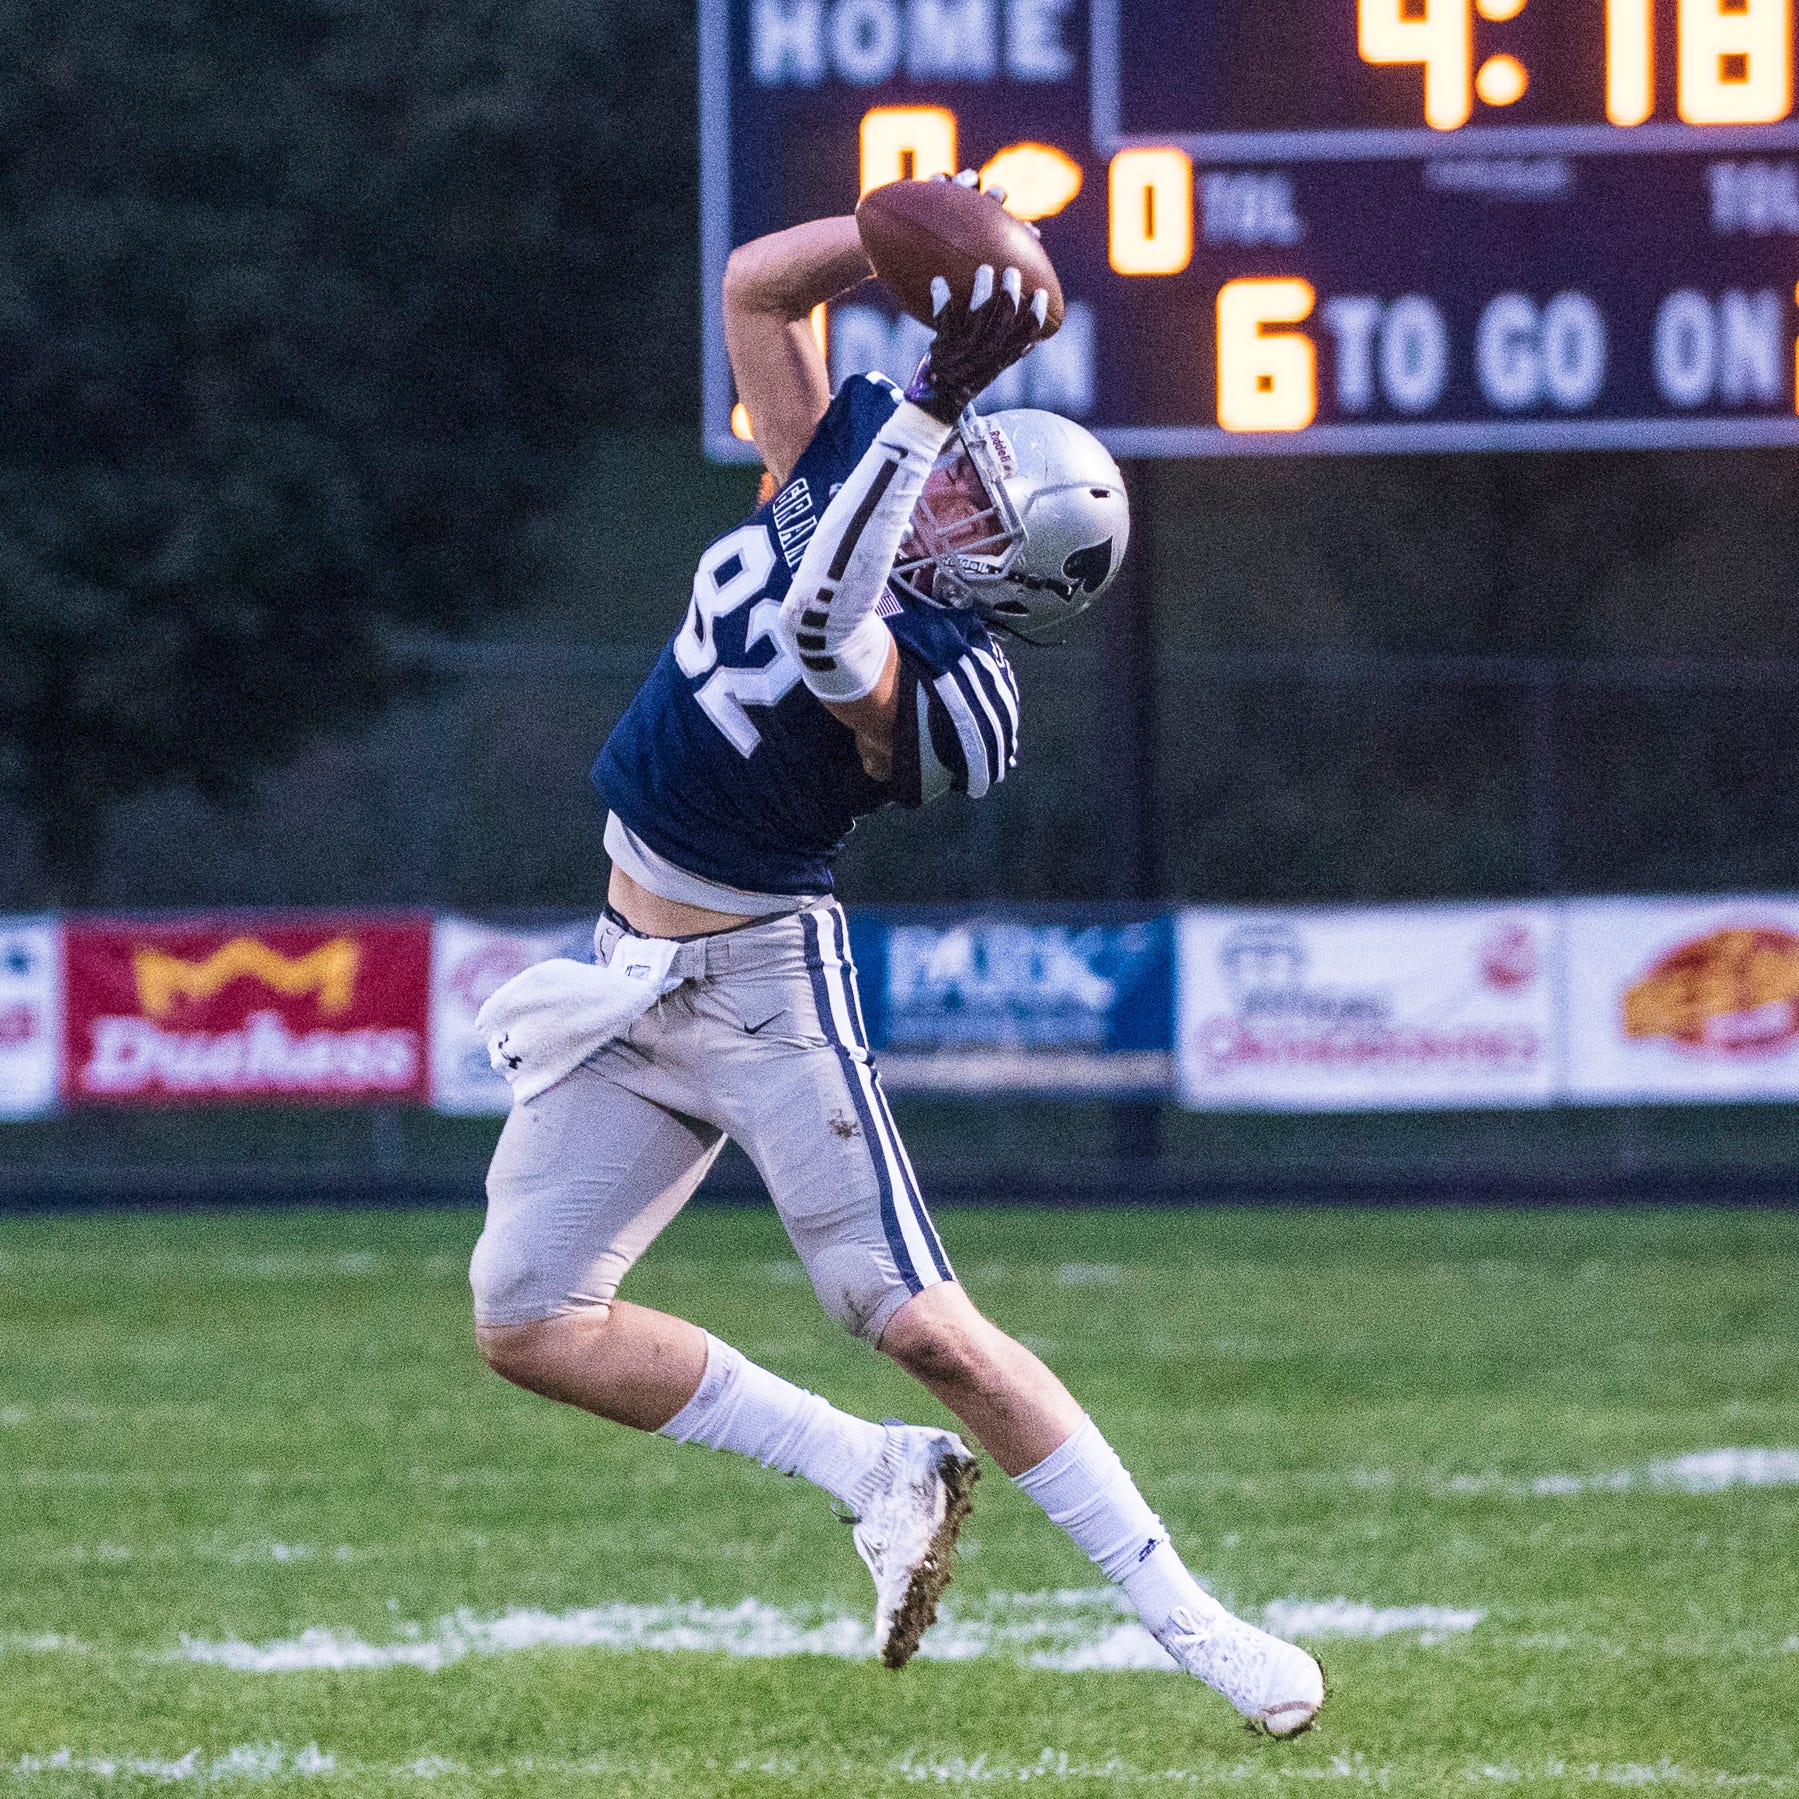 Granville's Tackett adding to his toolbox